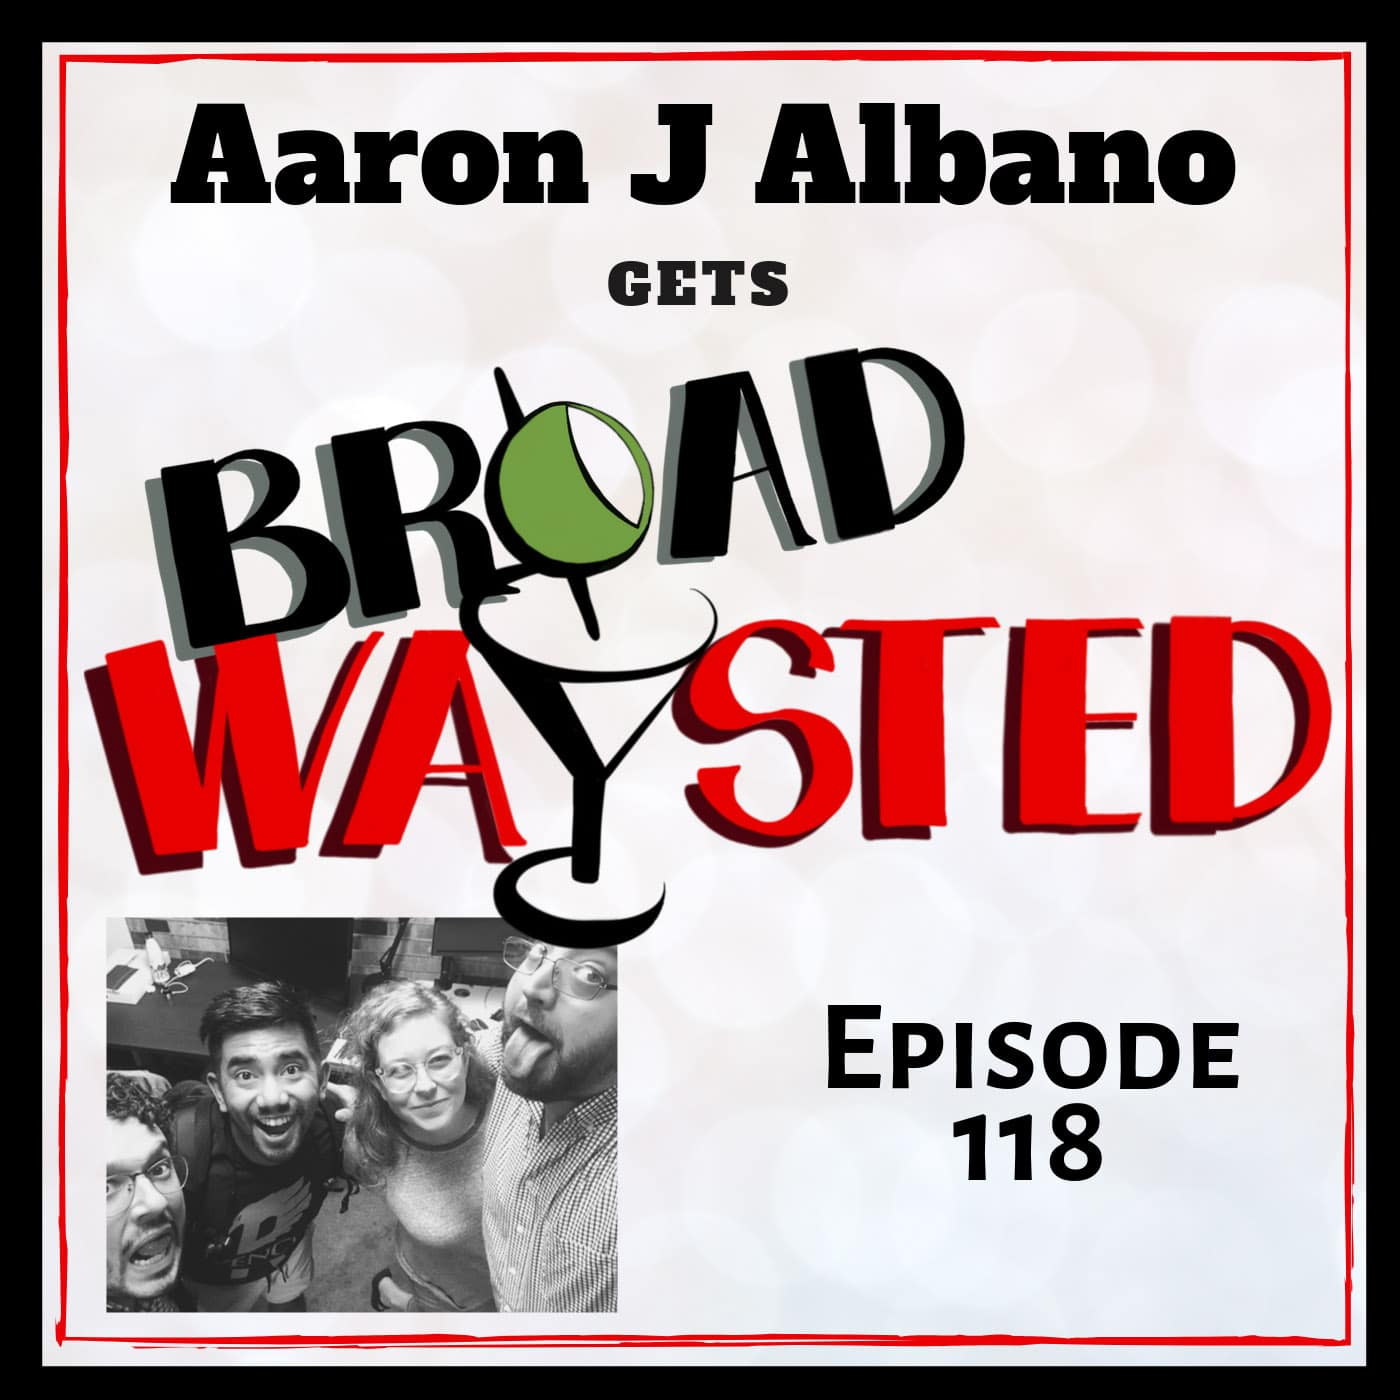 Broadwaysted Ep 118 Aaron J Albano